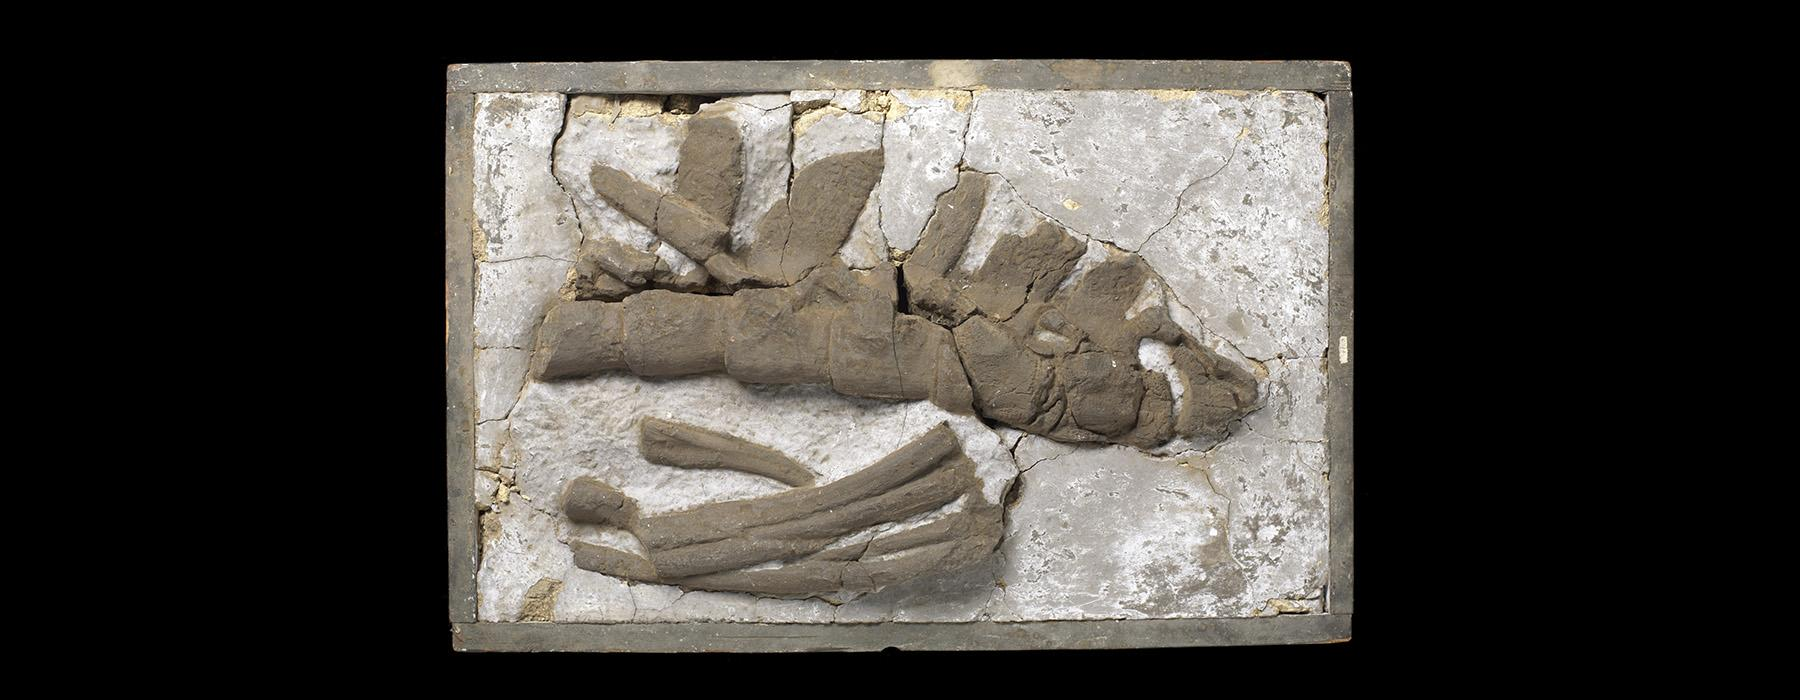 A set of bones in a flat plaster cast on a black background